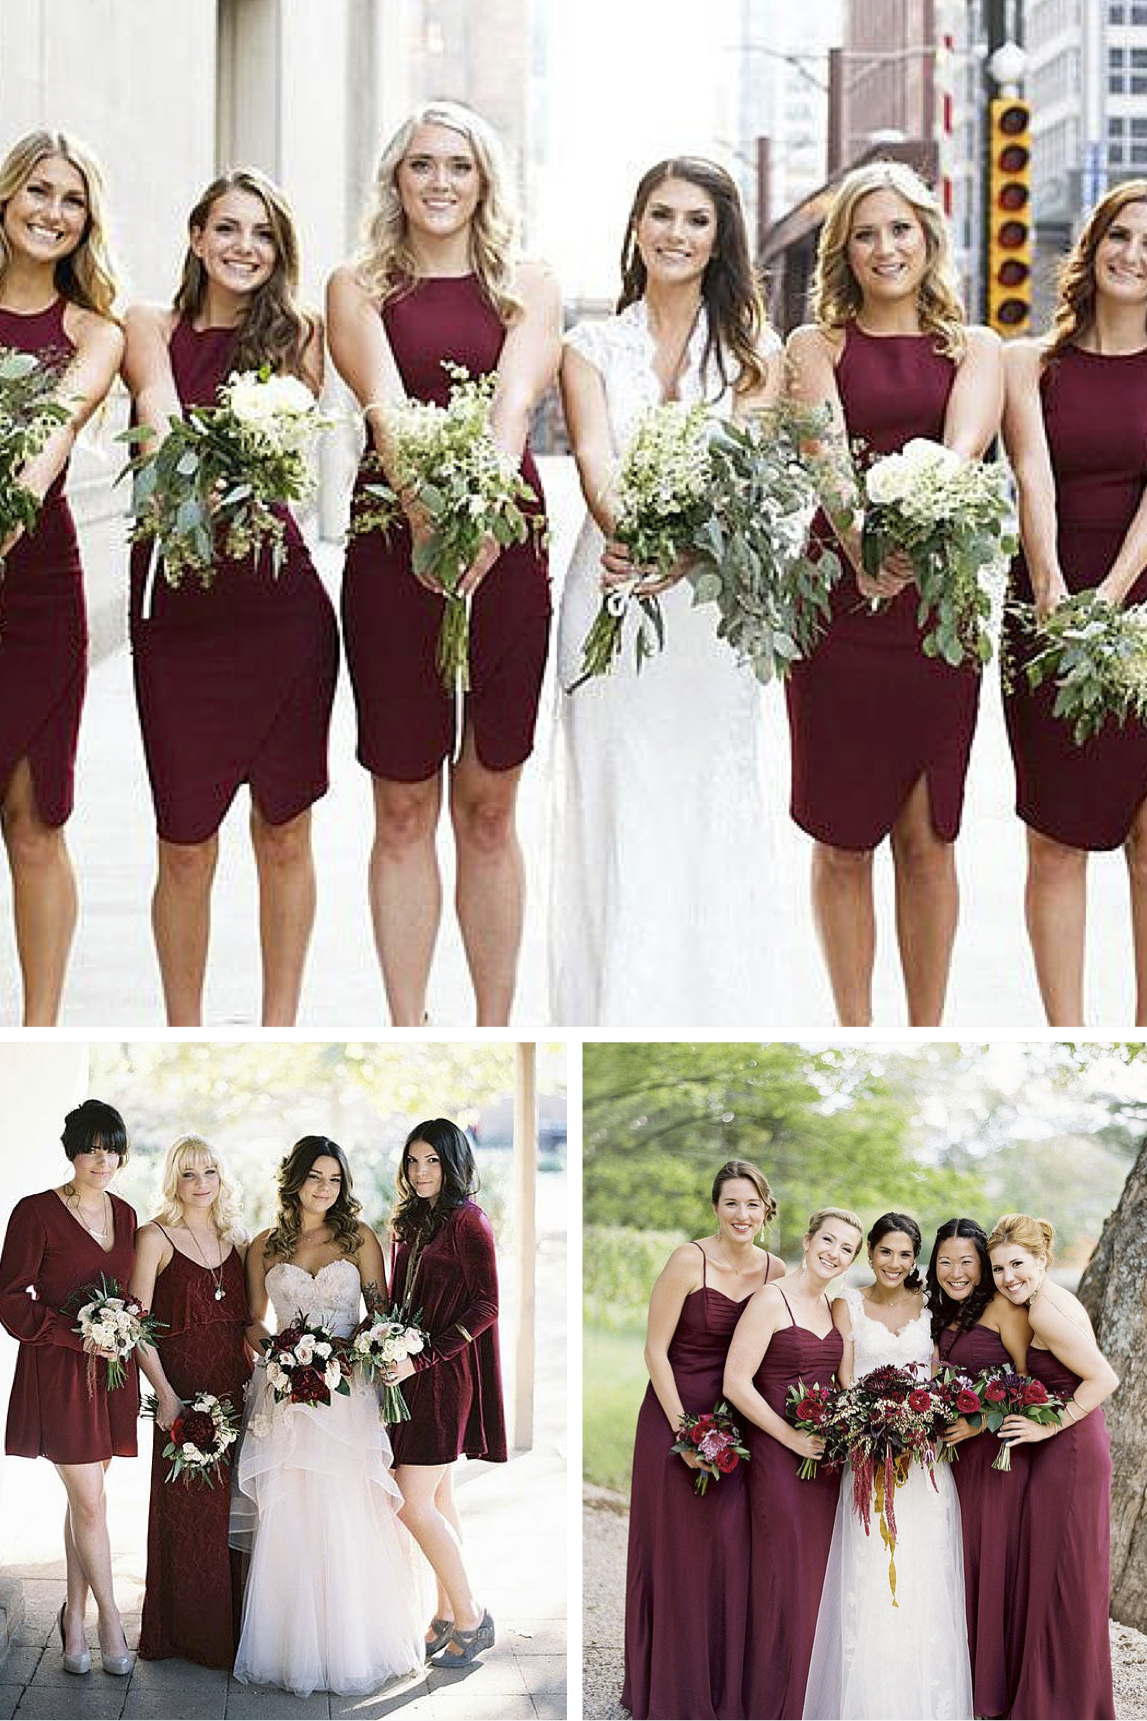 Wedding Bridesmaid Dresses Pantone Color Of The Year